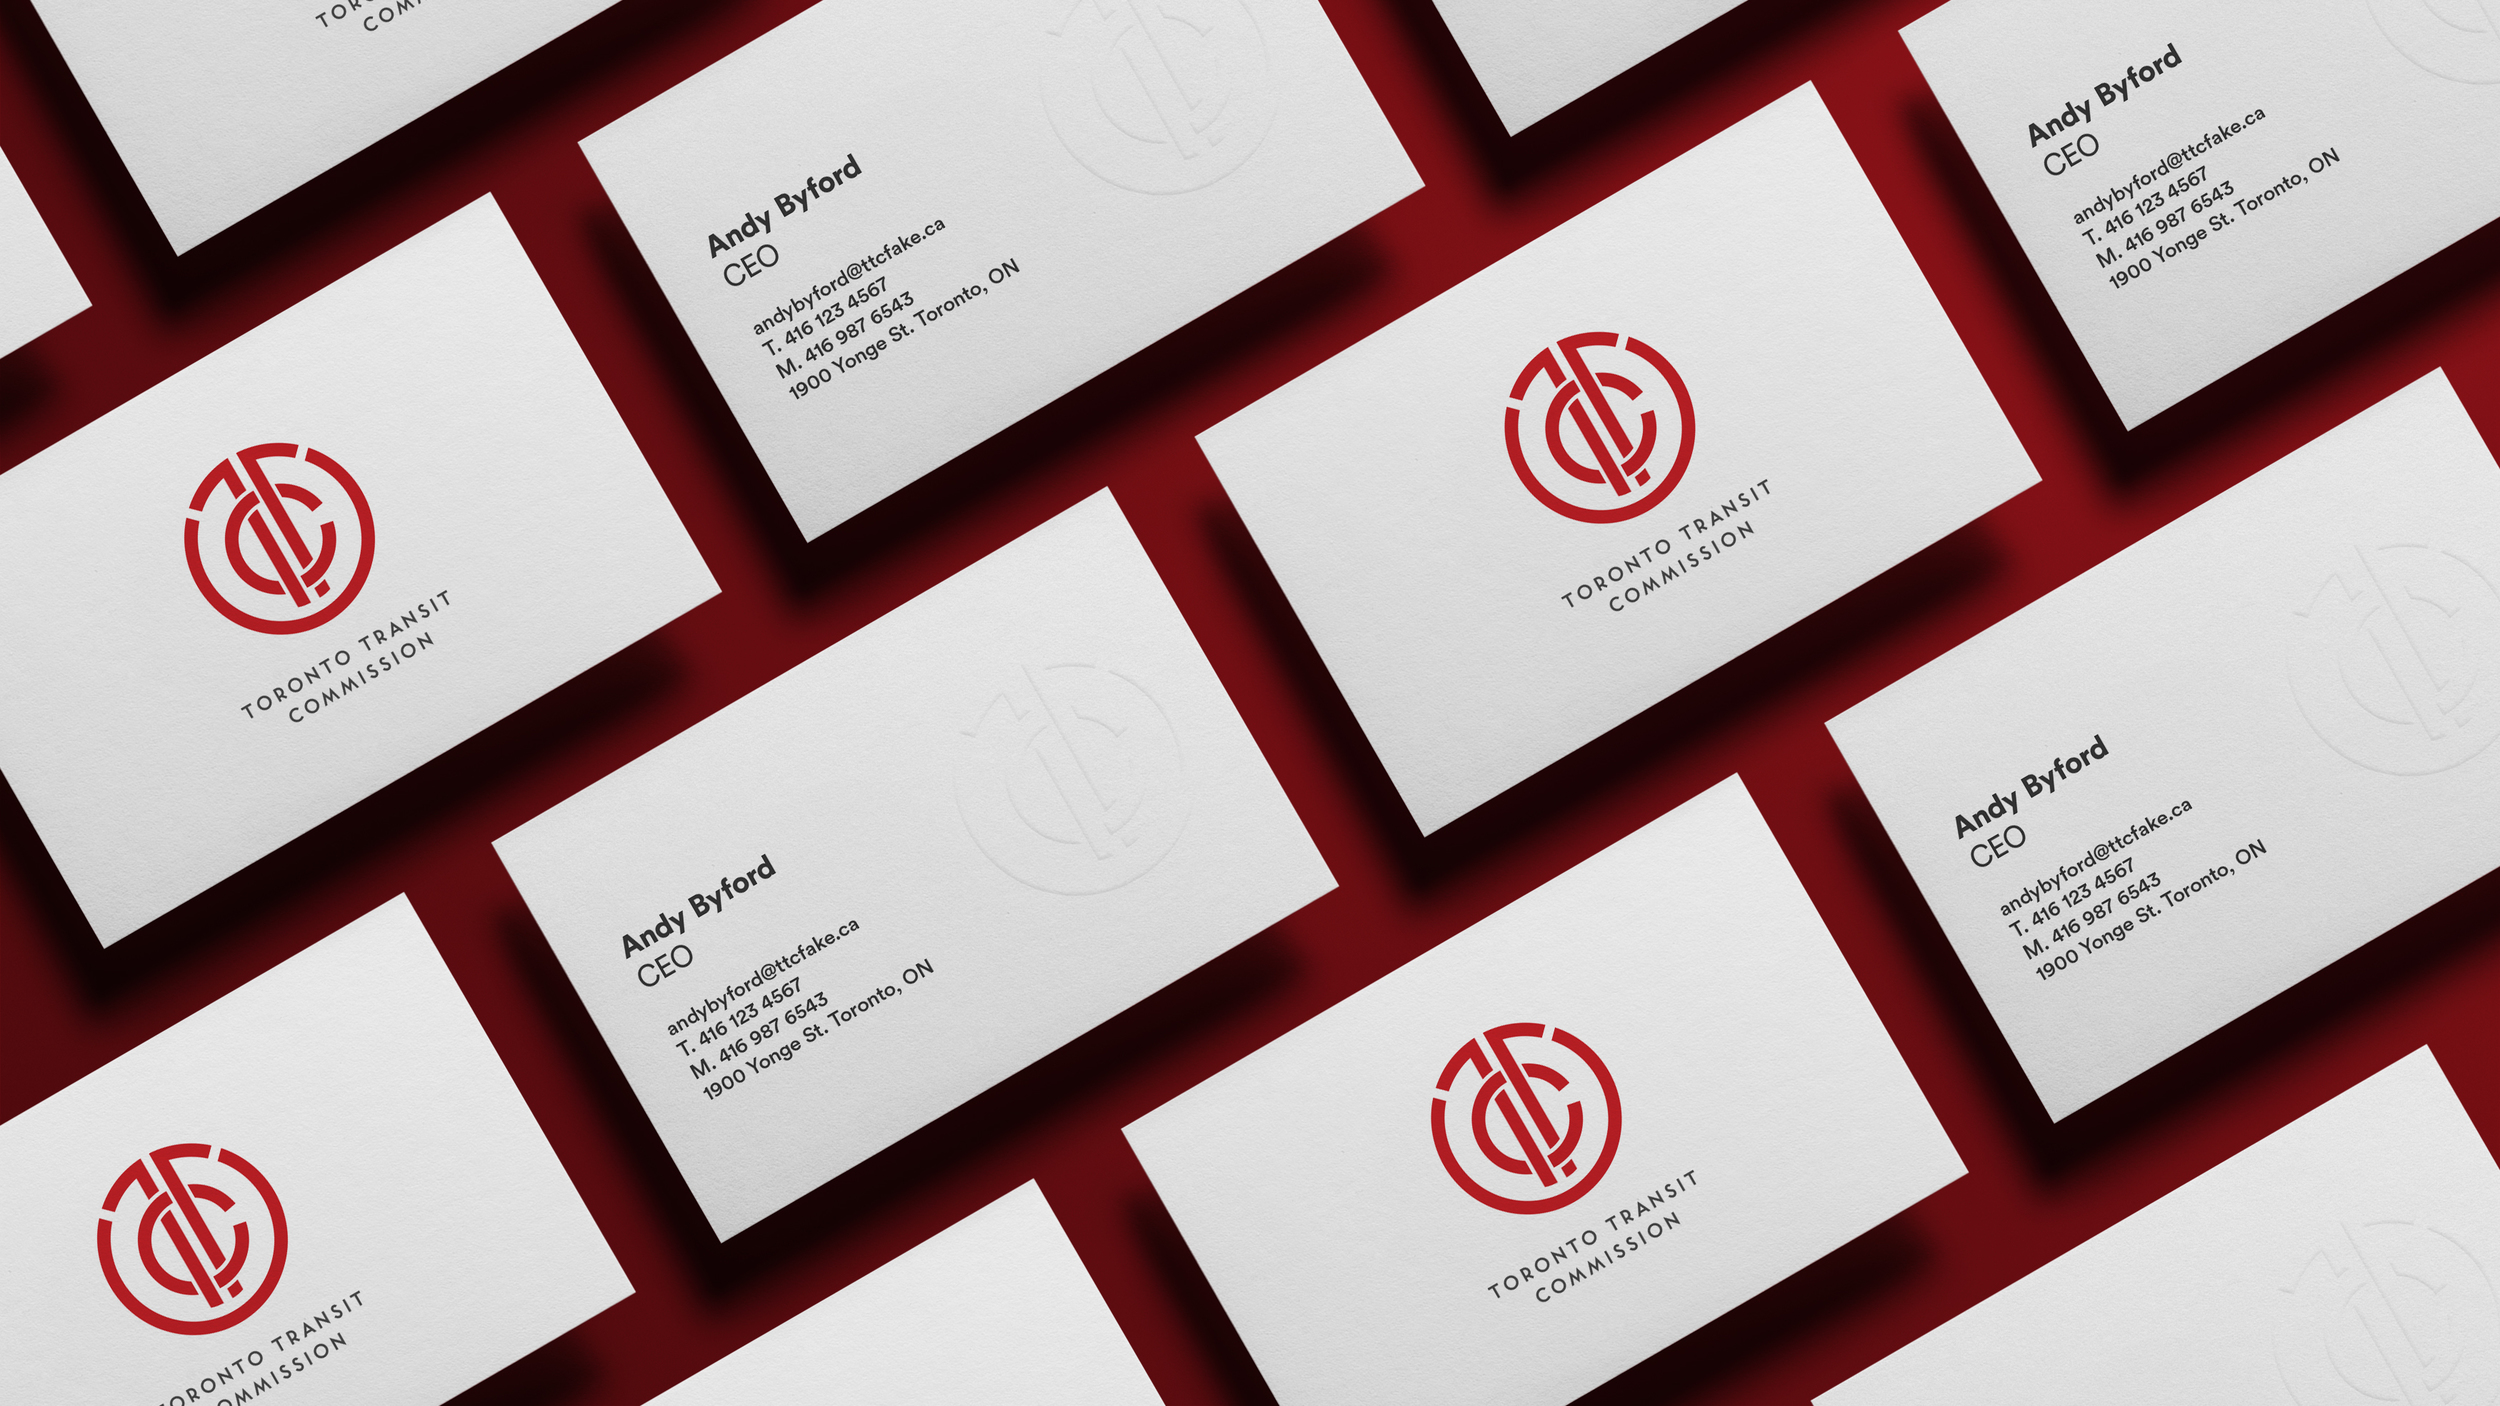 The business cards echo the simplicity of the logo design, with embossing visible on the back and the logo on the front.